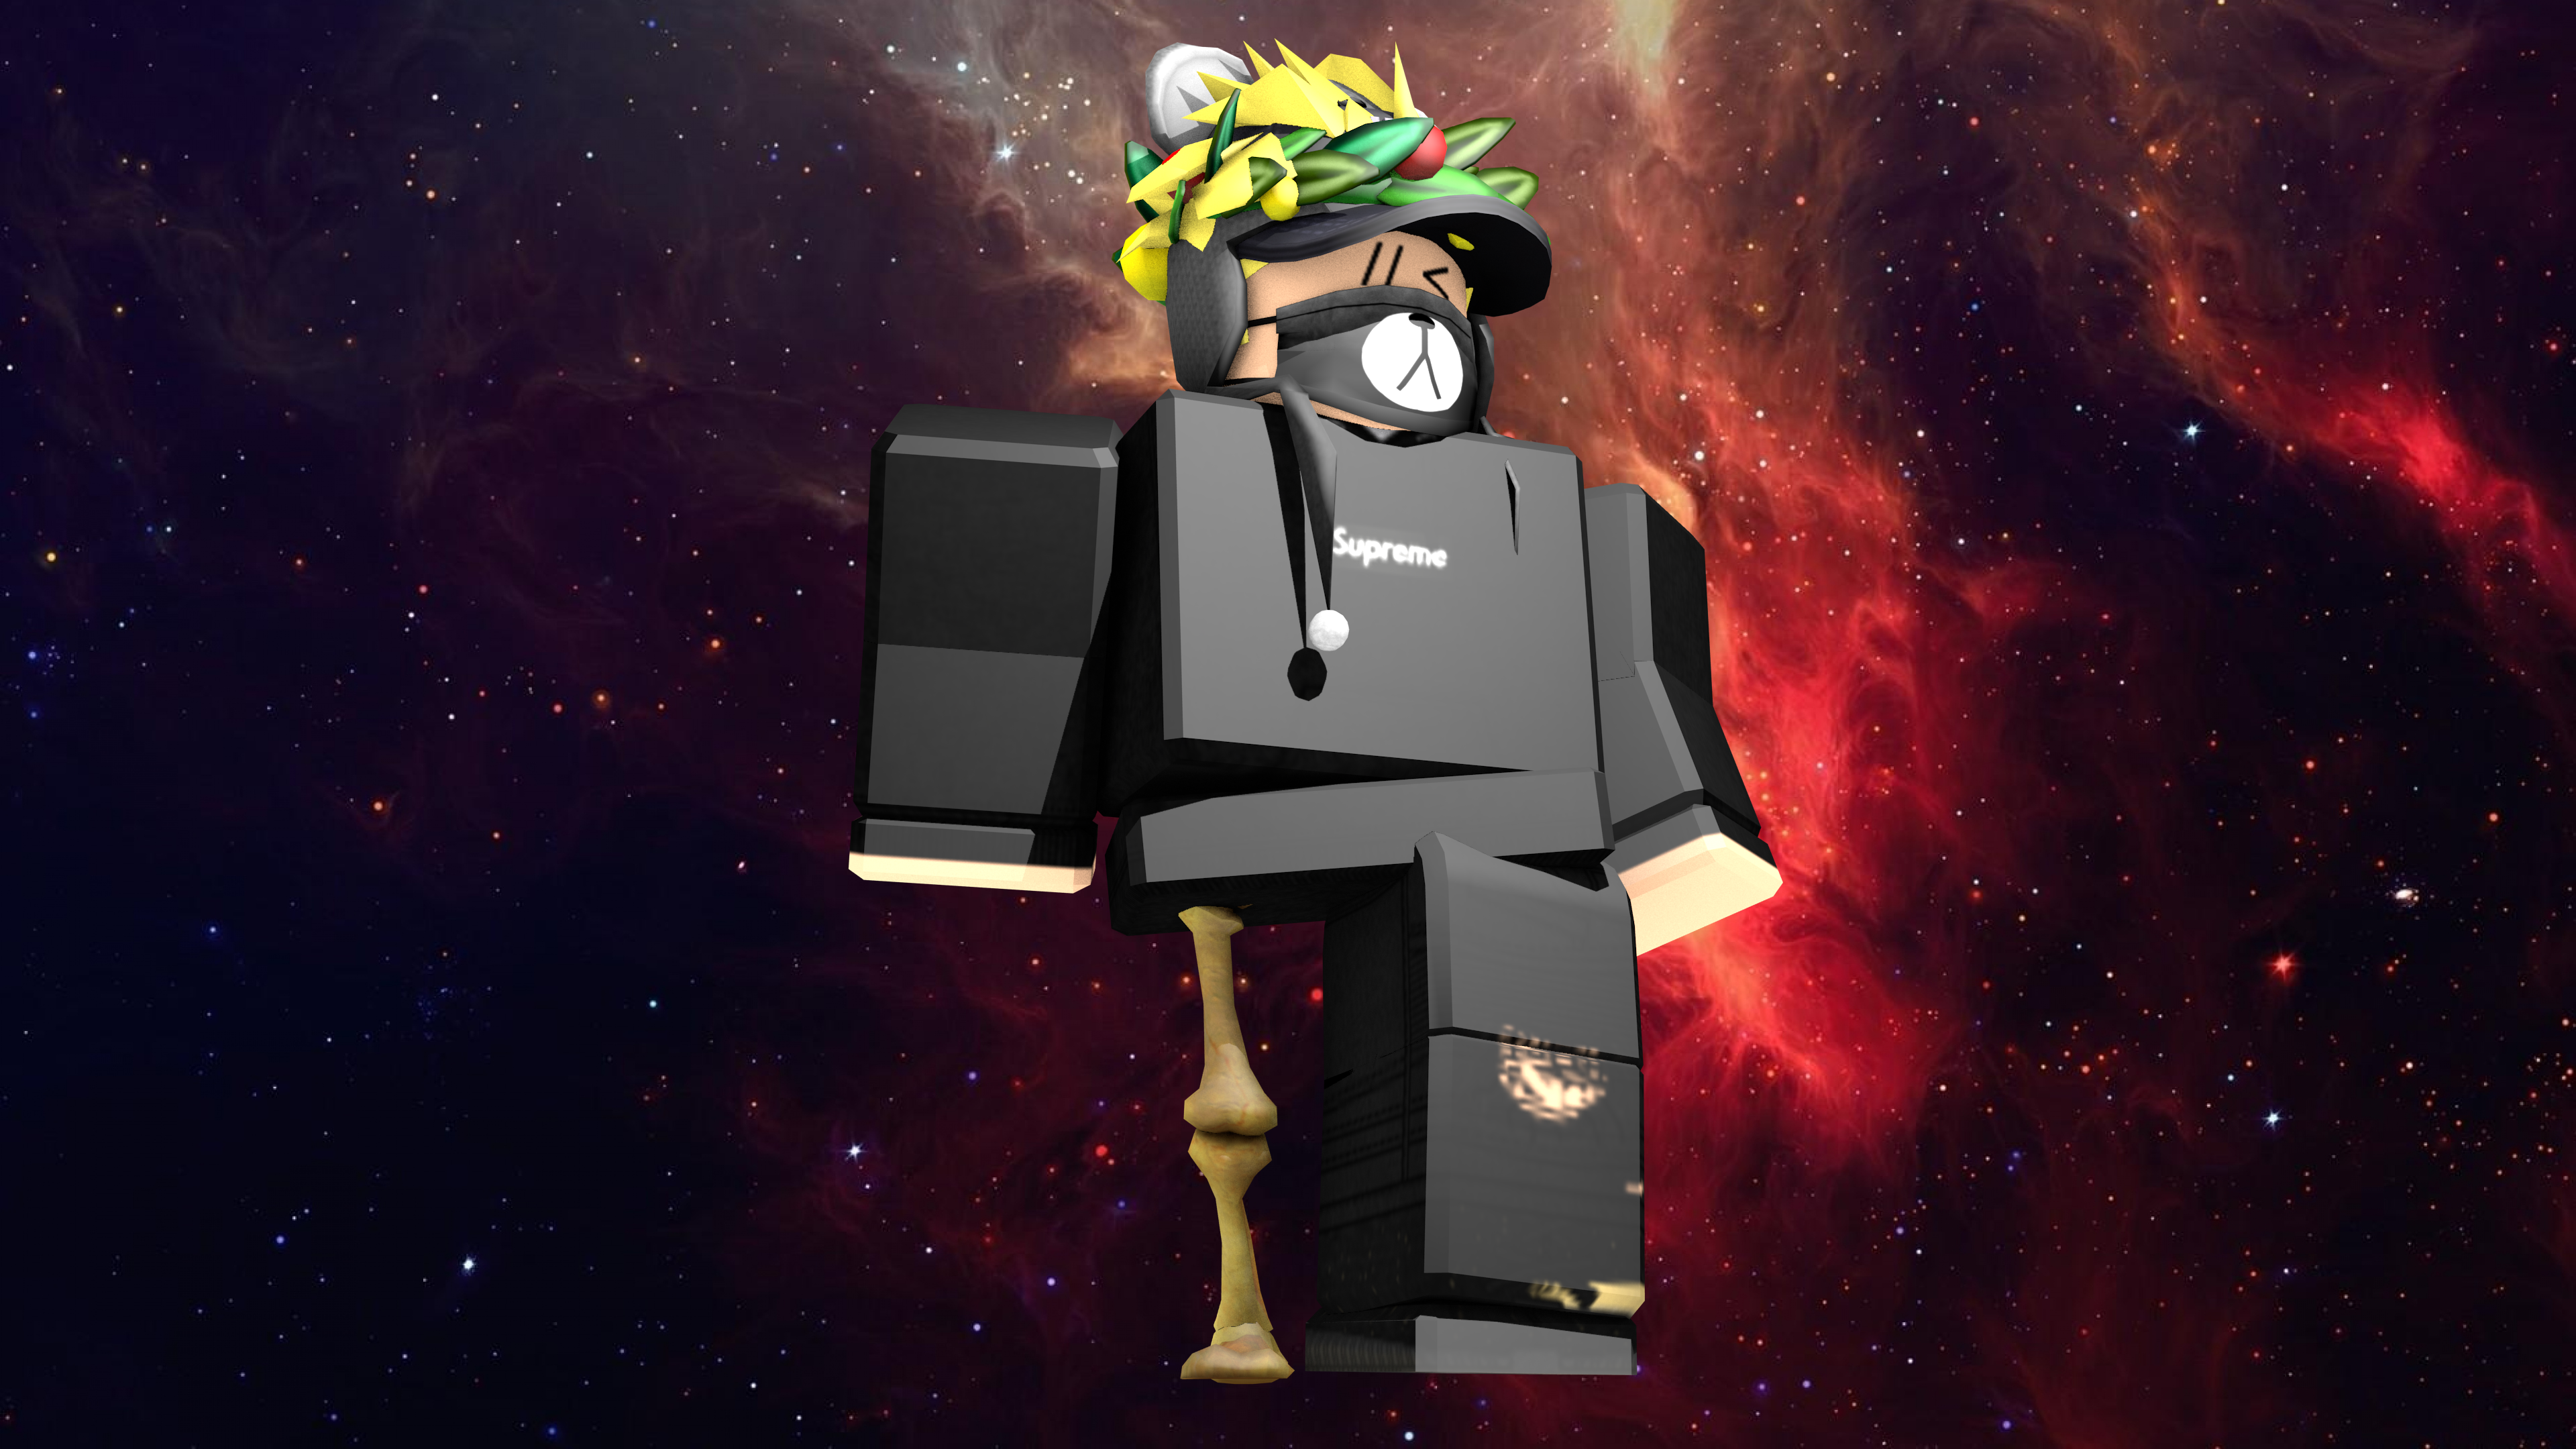 Aesthetic Boy Roblox Wallpaper Viral And Trend Marvel Wallpaper Wallpaper Roblox